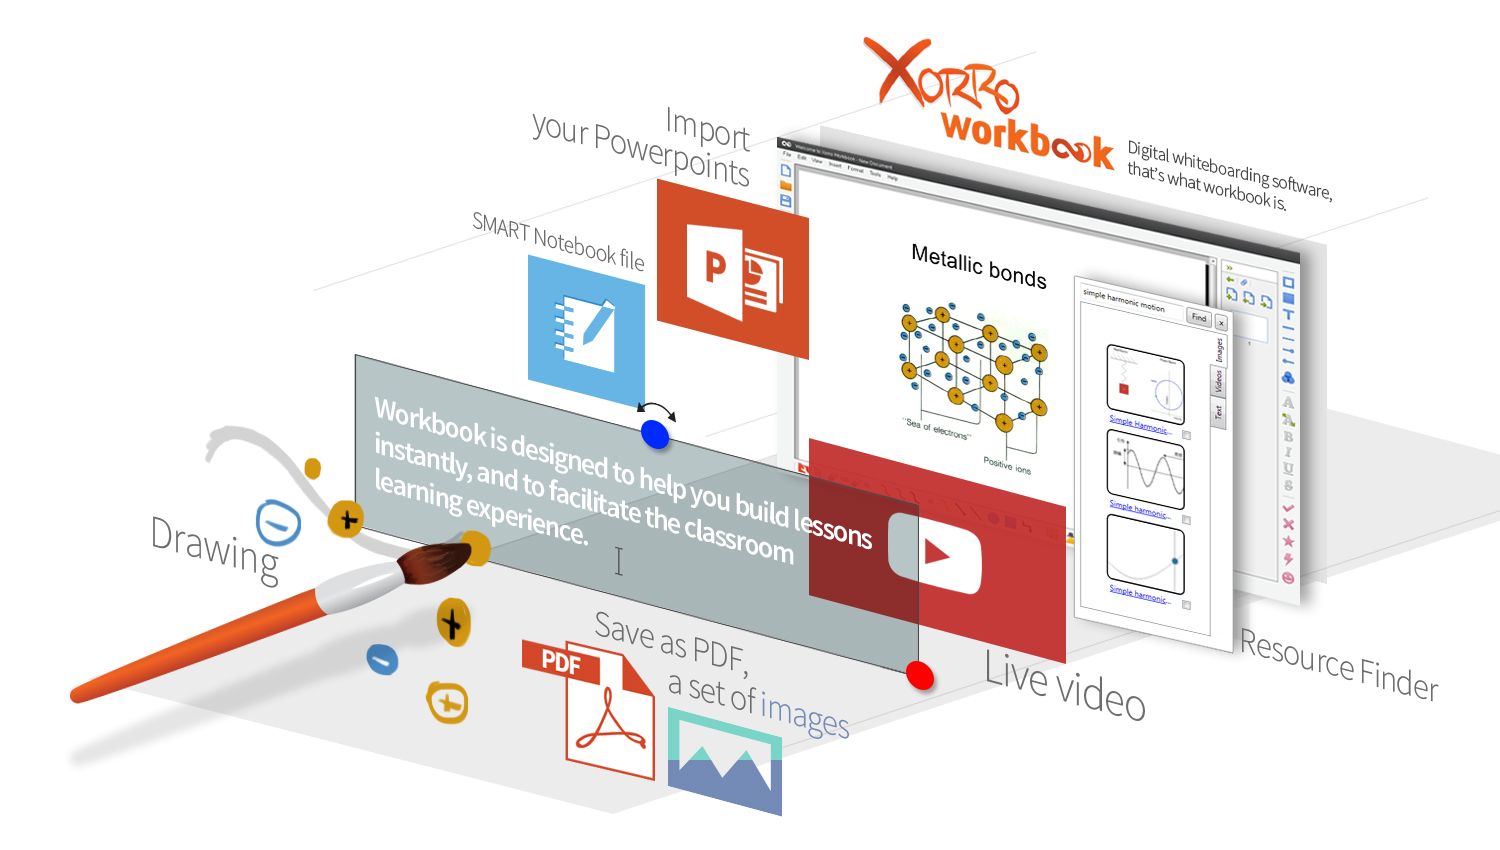 Workbooks workbook live : Workbook - 2Touch Australia